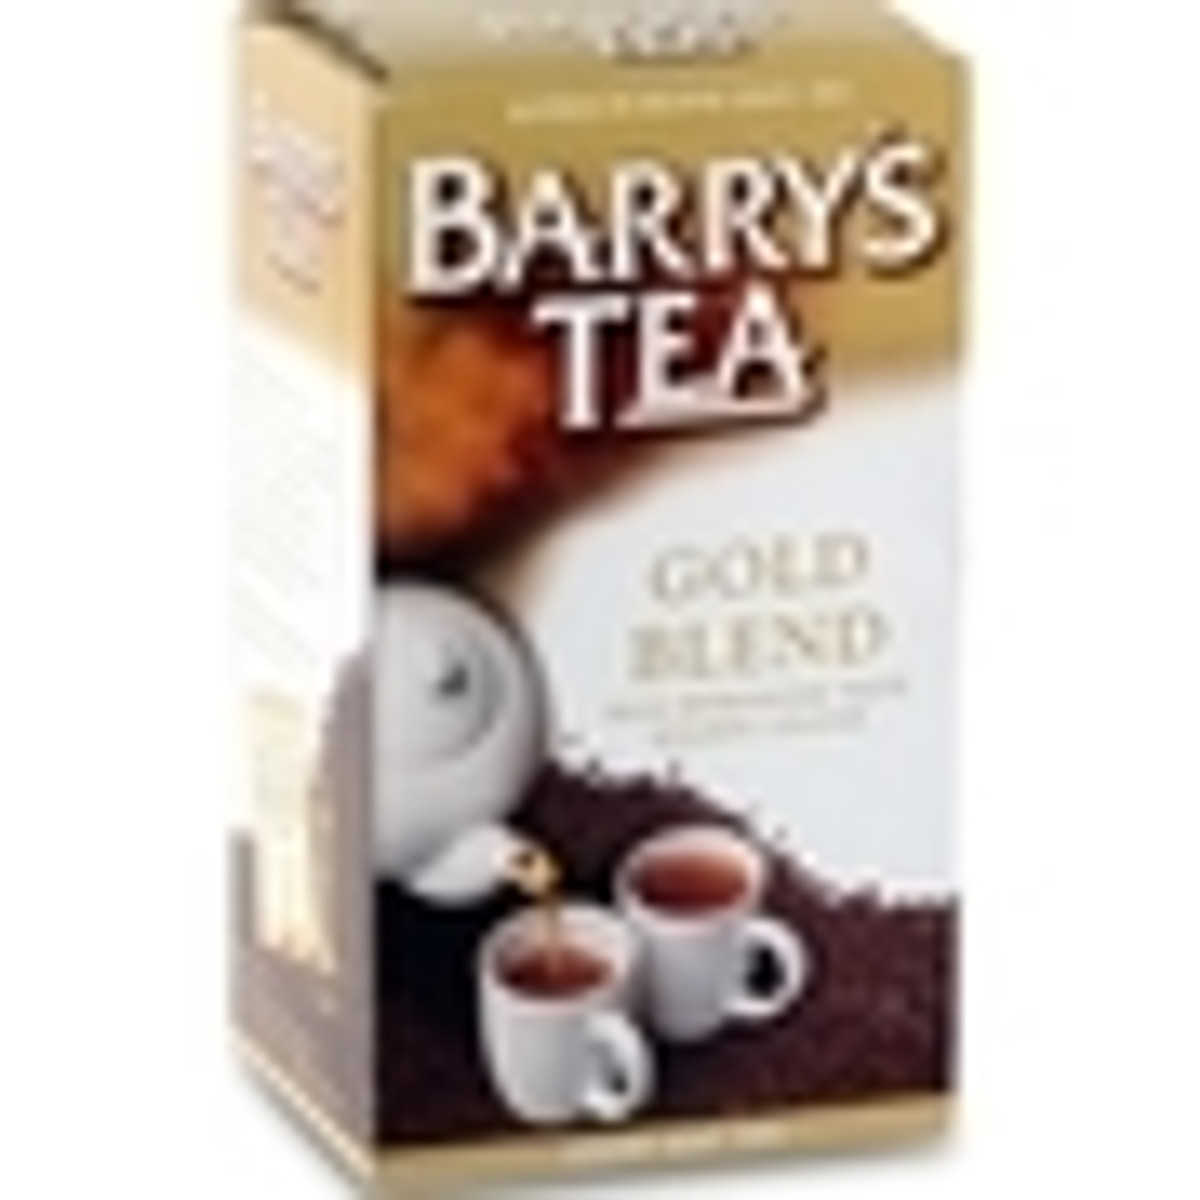 Barry's Tea from Ireland Loose Leaf